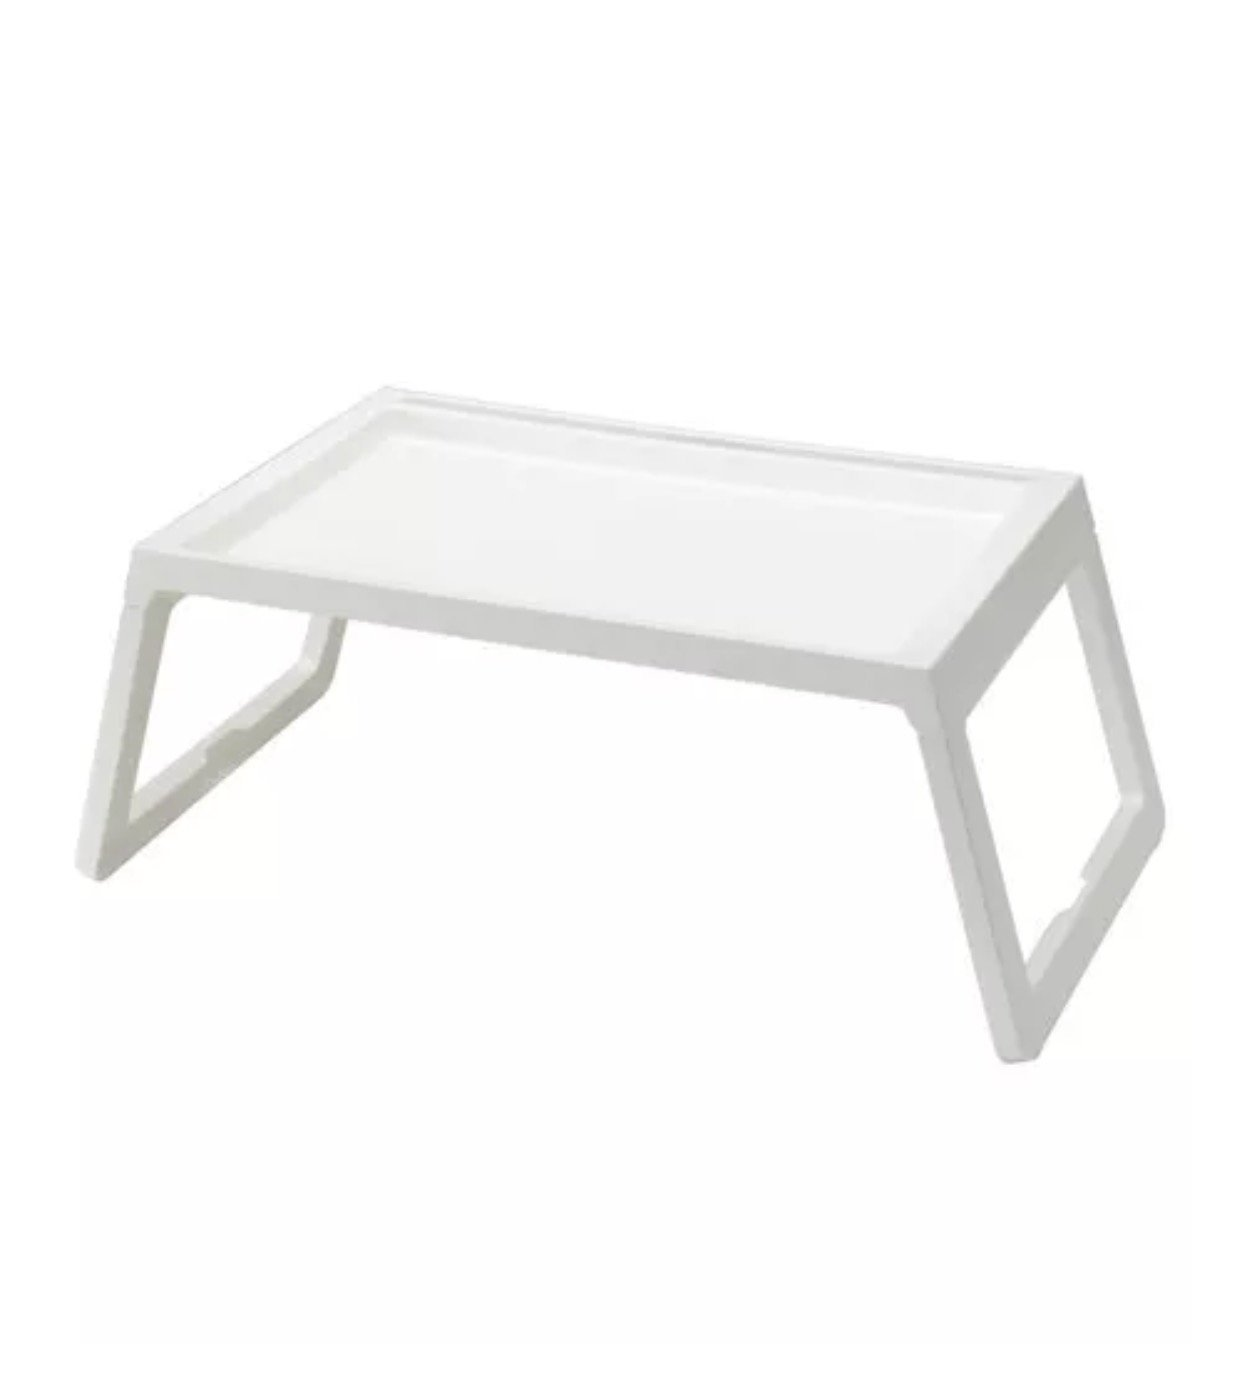 - Ikea Klipsk Foldable Bed Tray, White: Amazon.in: Home & Kitchen